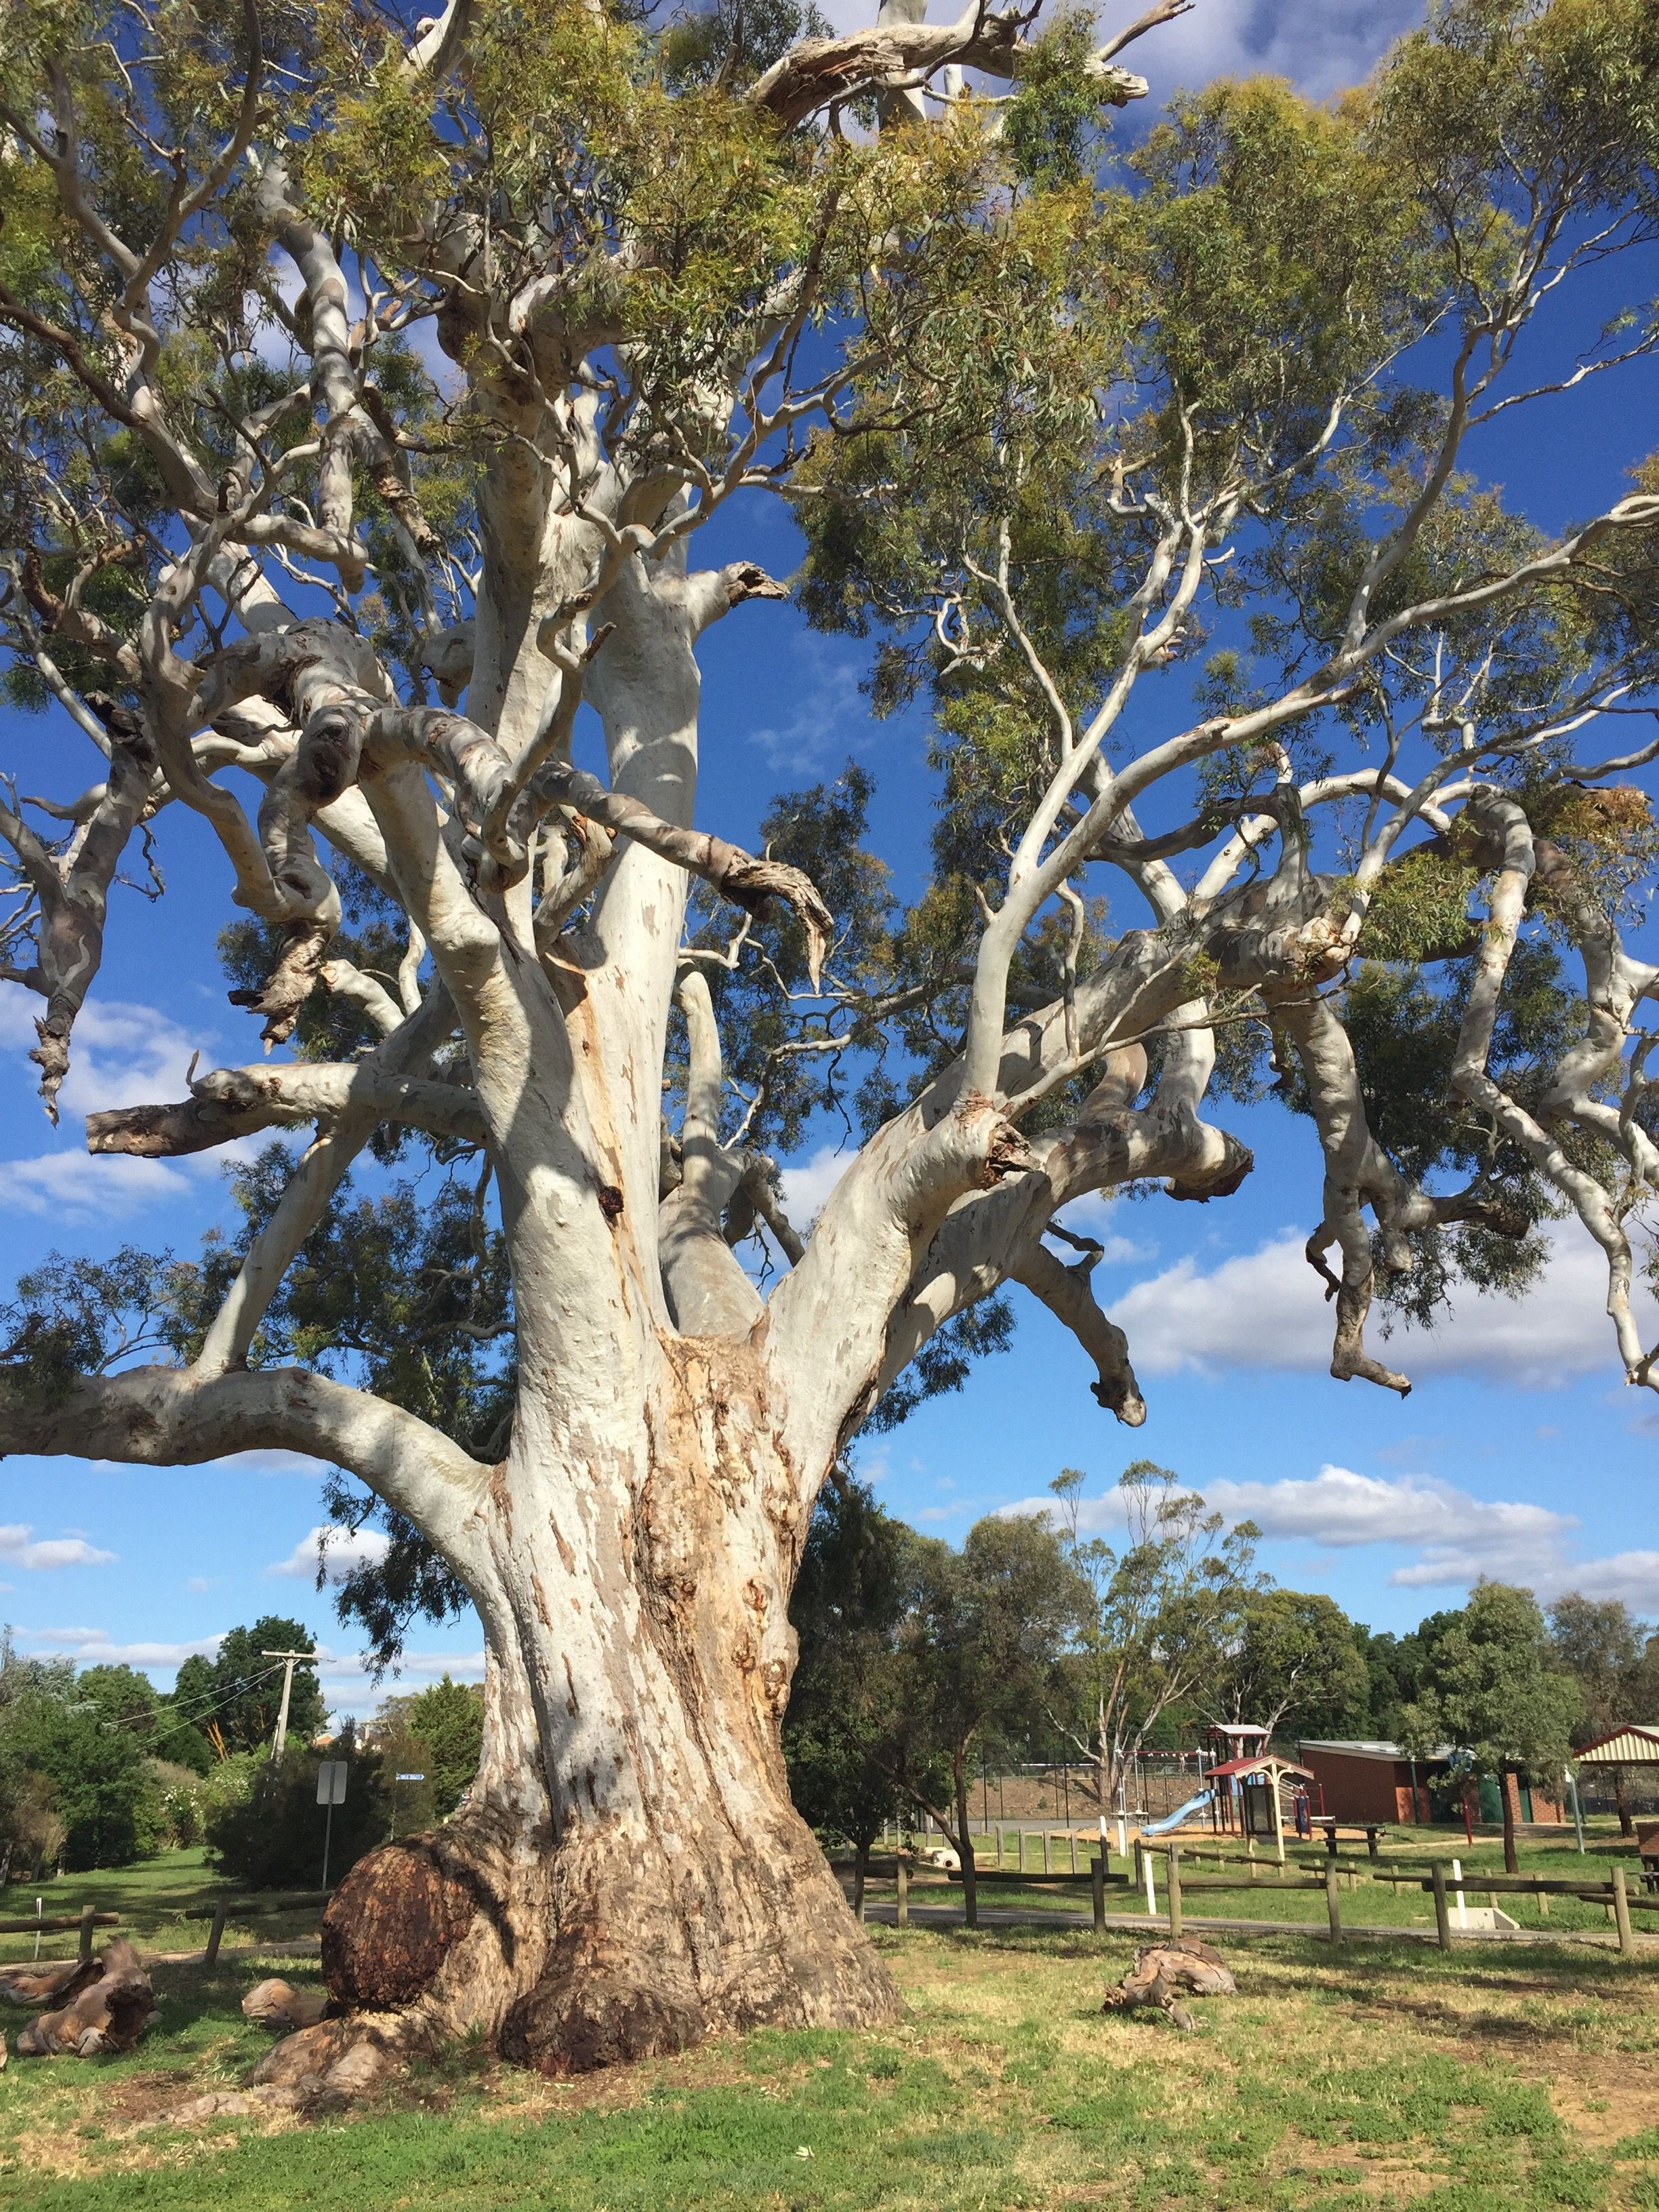 River red gum (Eucalyptus camaldulensis), growing near the town of  Daylesford, VIC, Australia | Eucalyptus tree, Australian trees, Australia  landscape